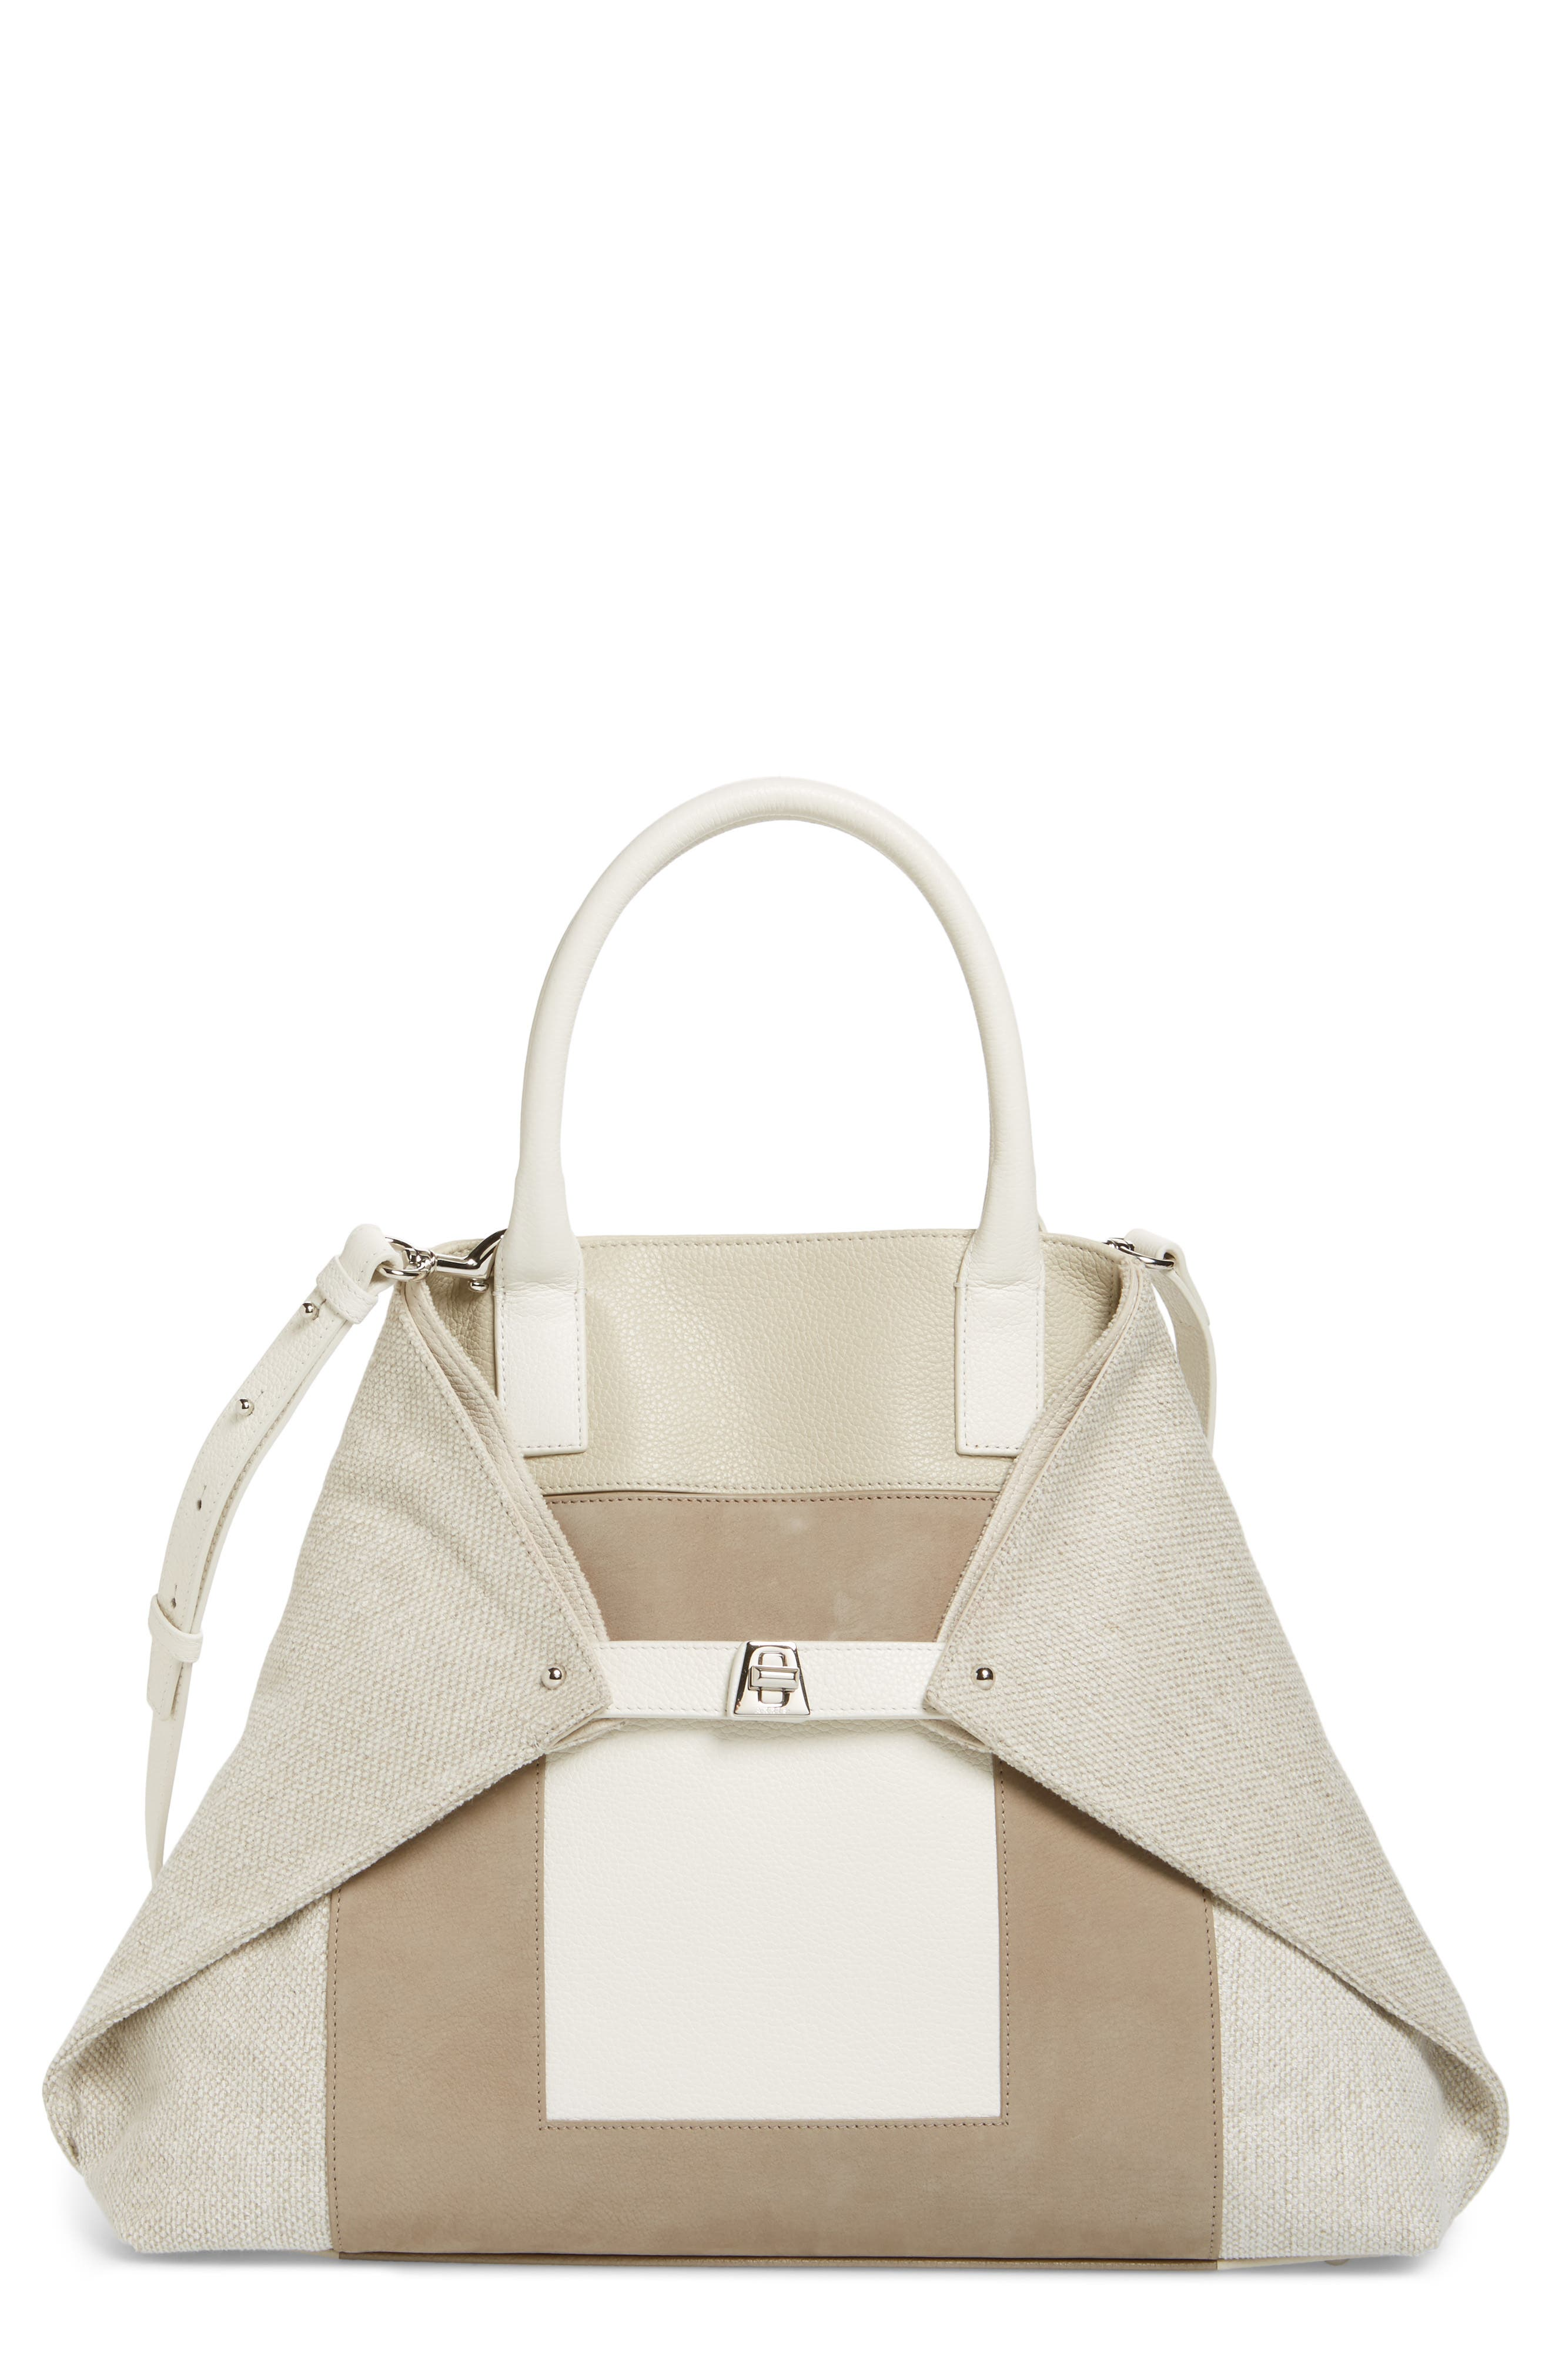 Akris Medium AI Leather & Canvas Tote